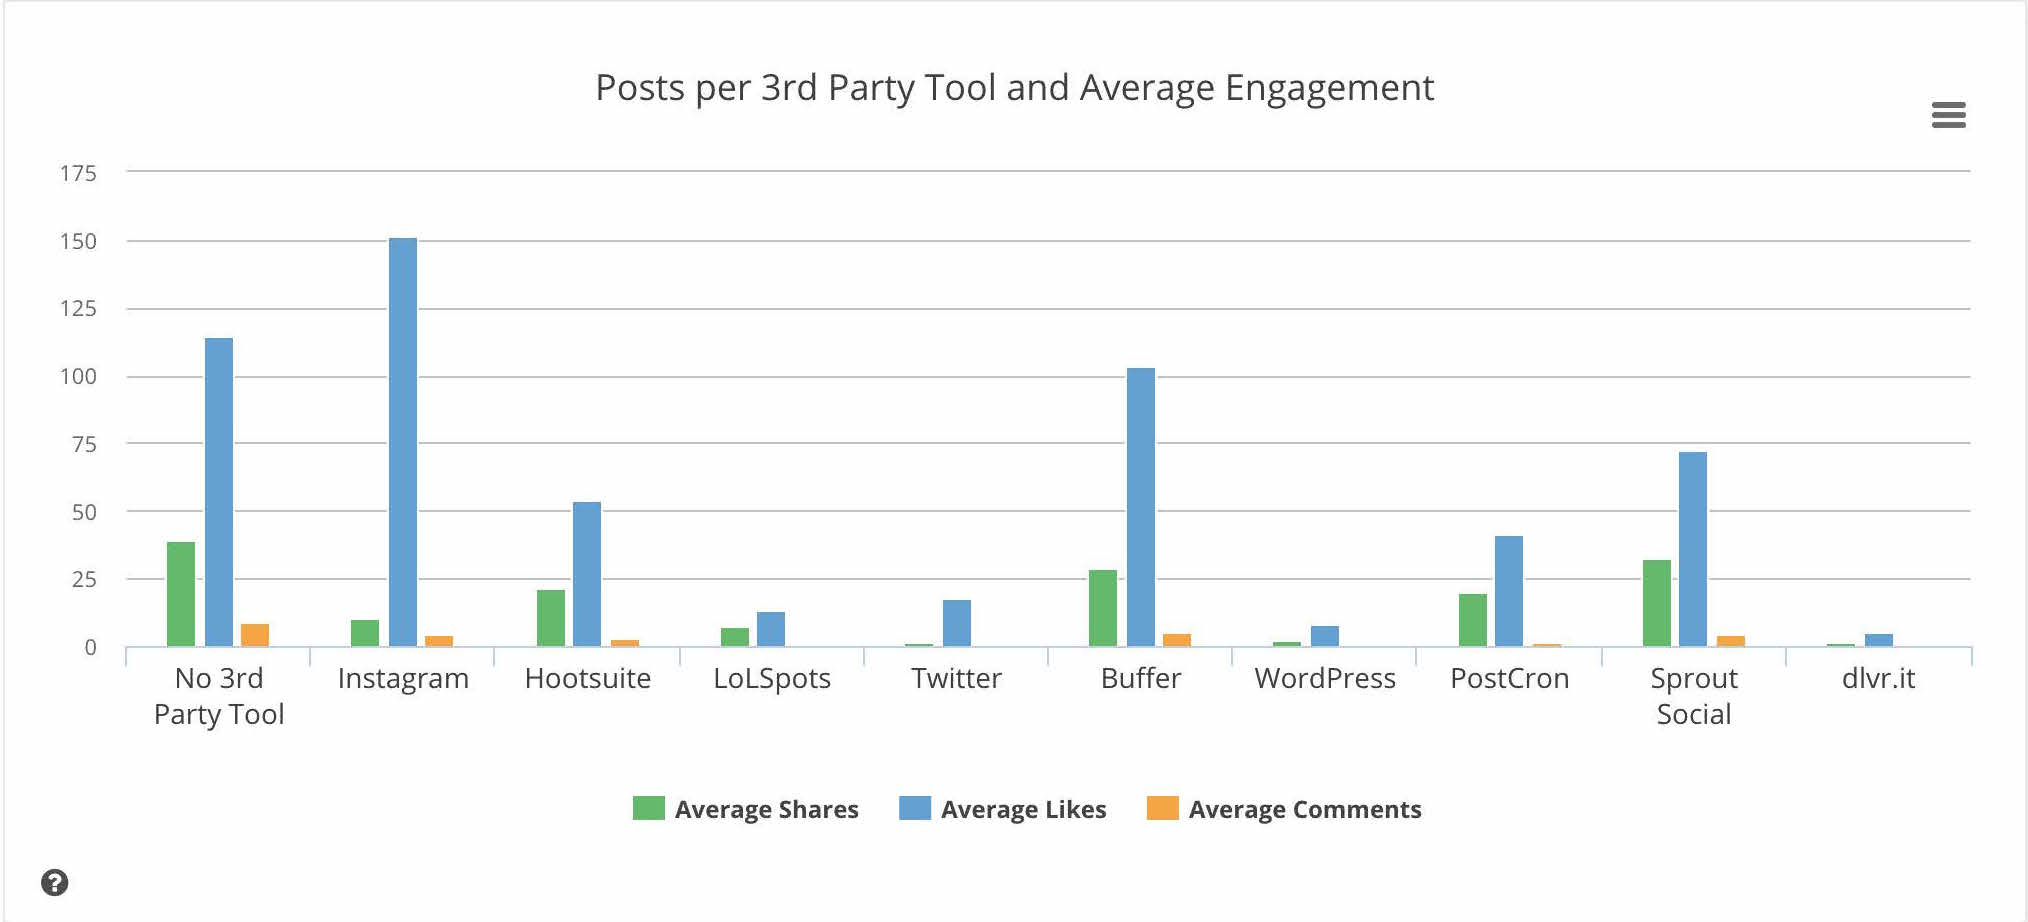 Engagement based on 3rd Party Tools